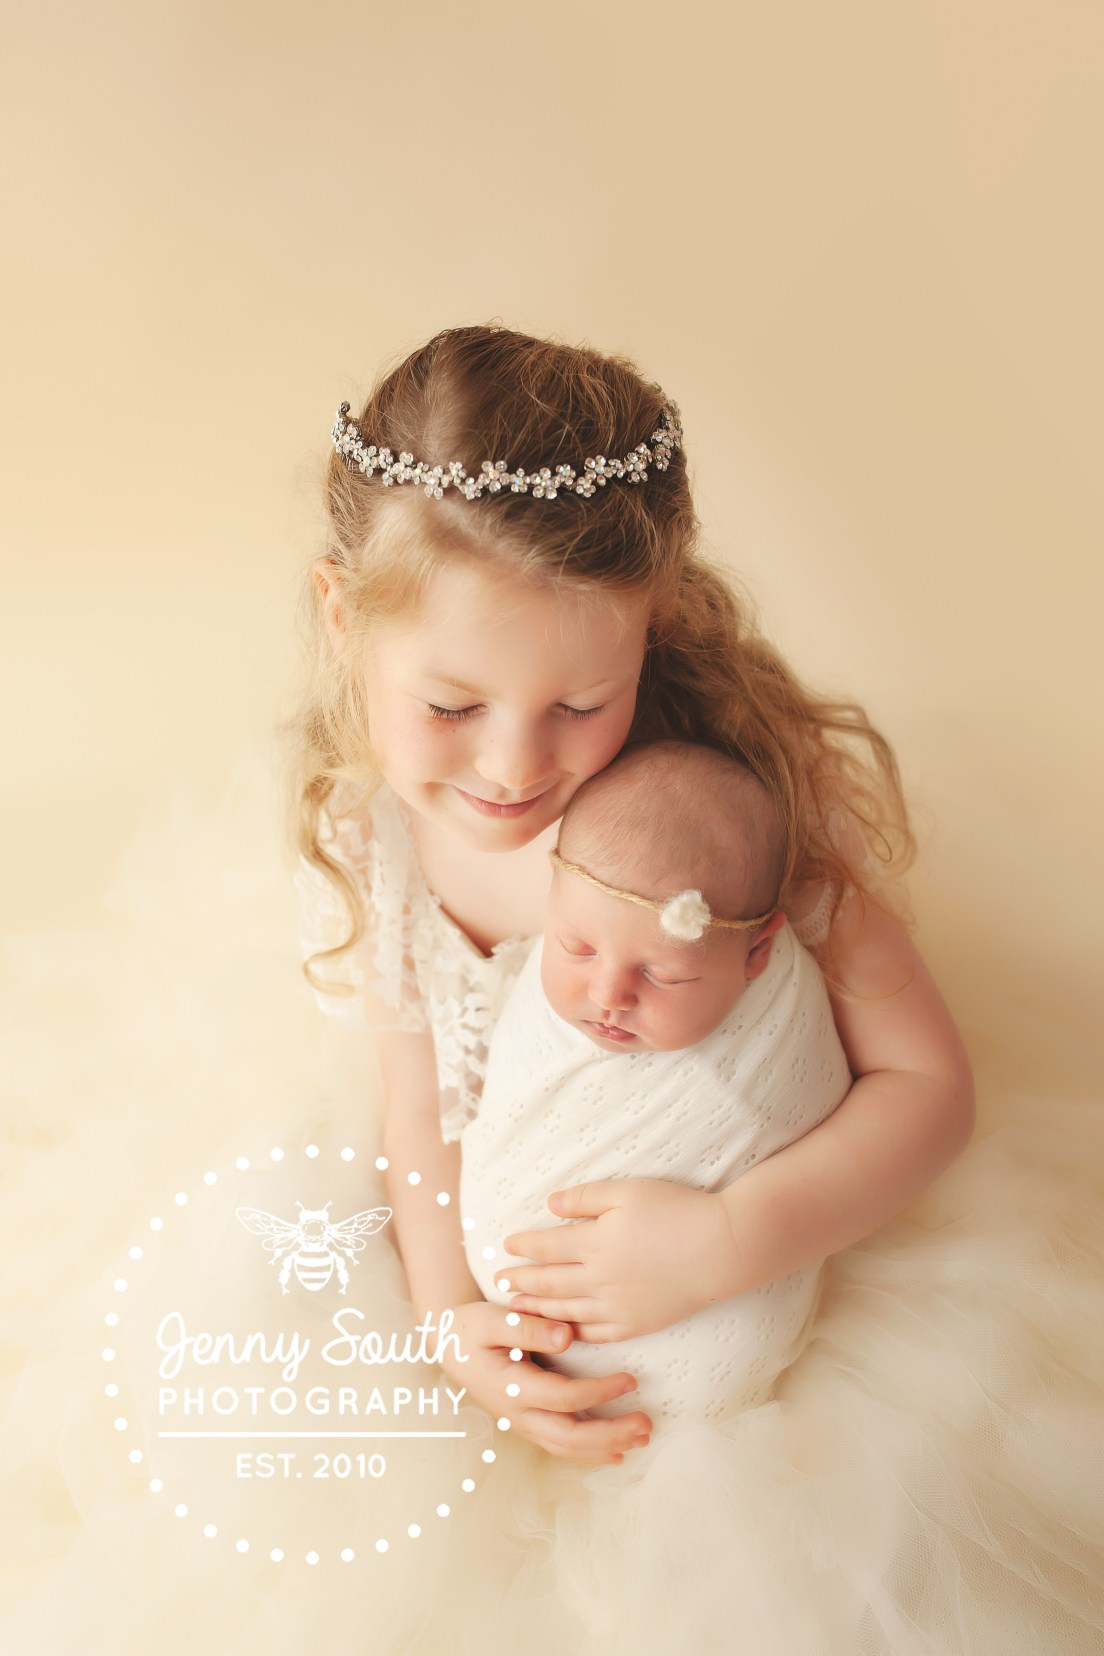 A heavenly image of two new sisters sharing a sweet embrace as they pose during a newborn photo shoot